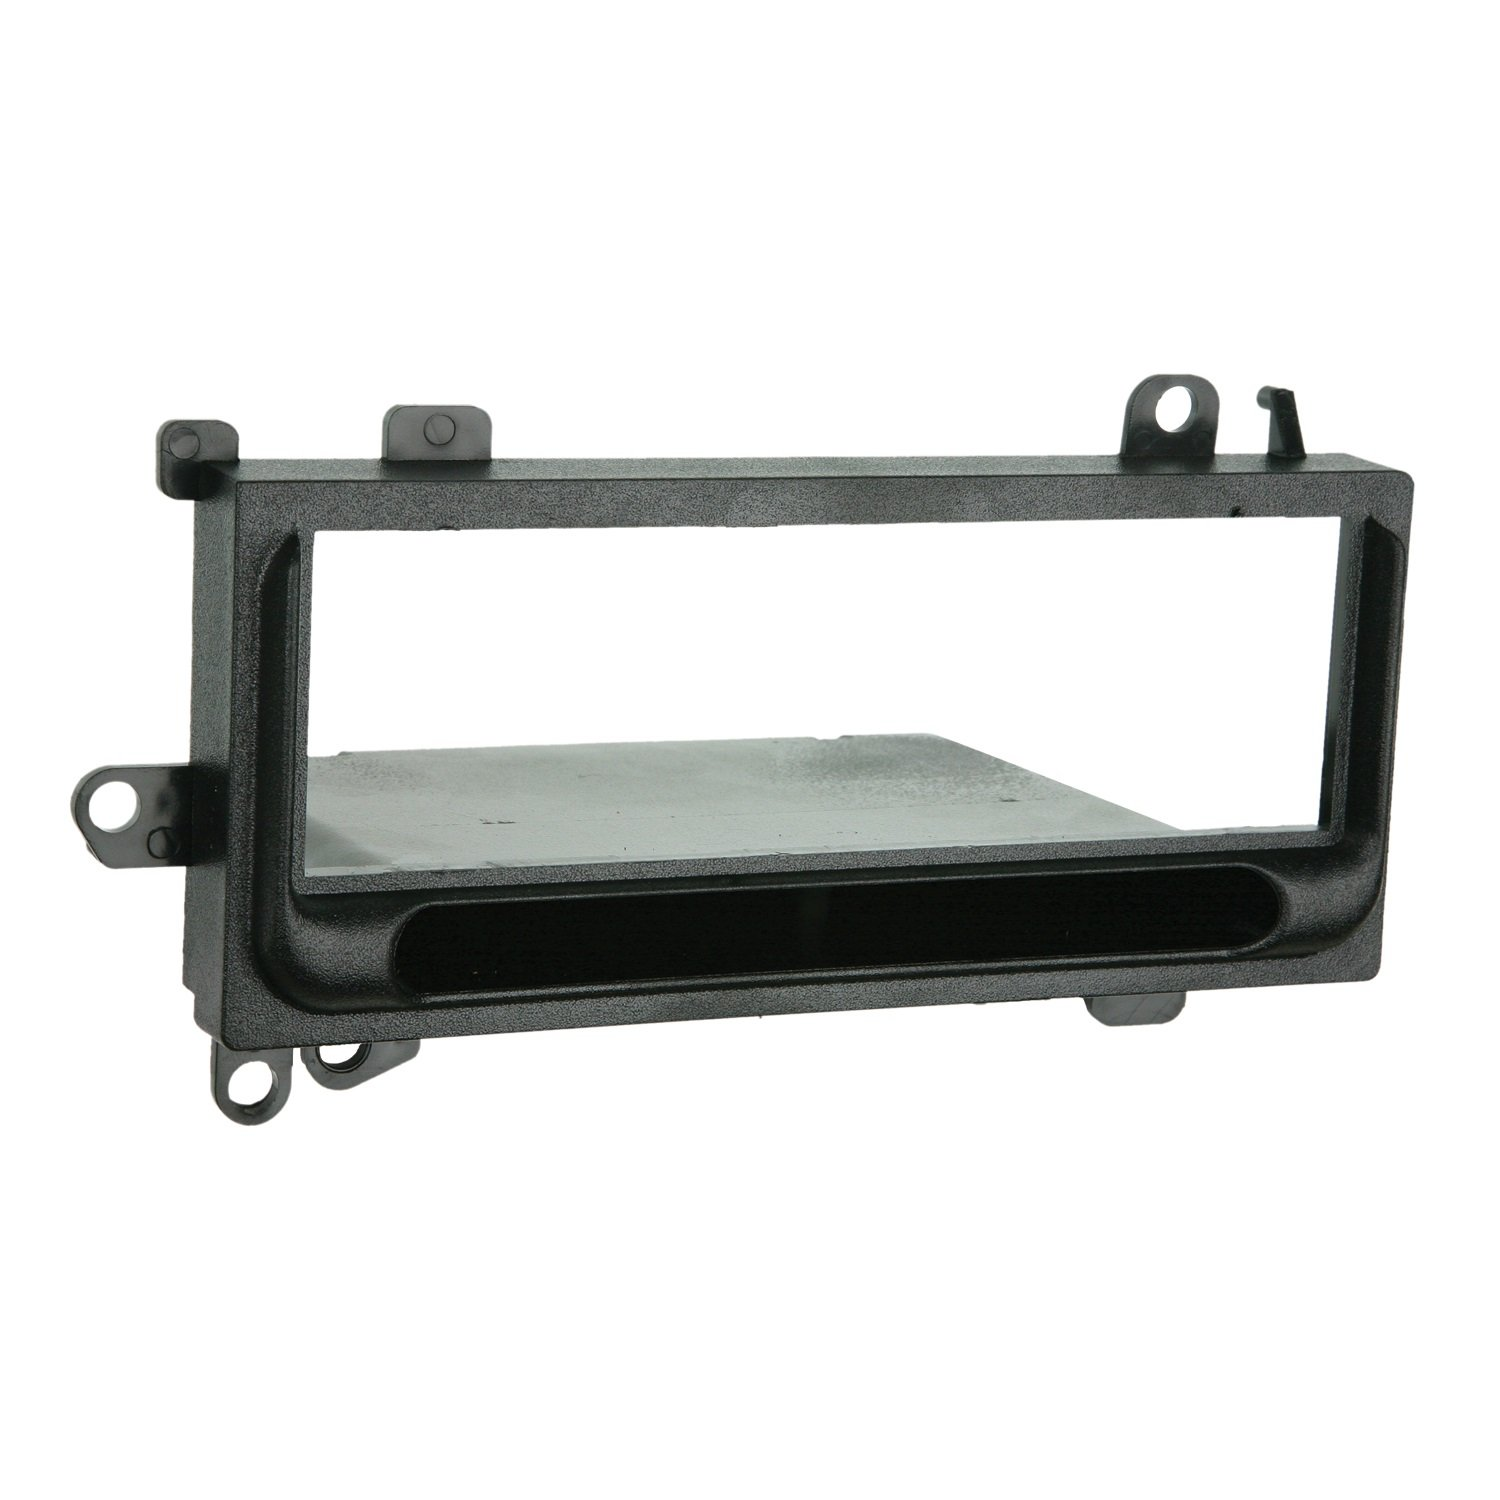 Amazon metra 99 6000 single din installation kit for 1974 amazon metra 99 6000 single din installation kit for 1974 2003 chrysler dodge eagle jeep and plymouth vehicles car electronics publicscrutiny Image collections